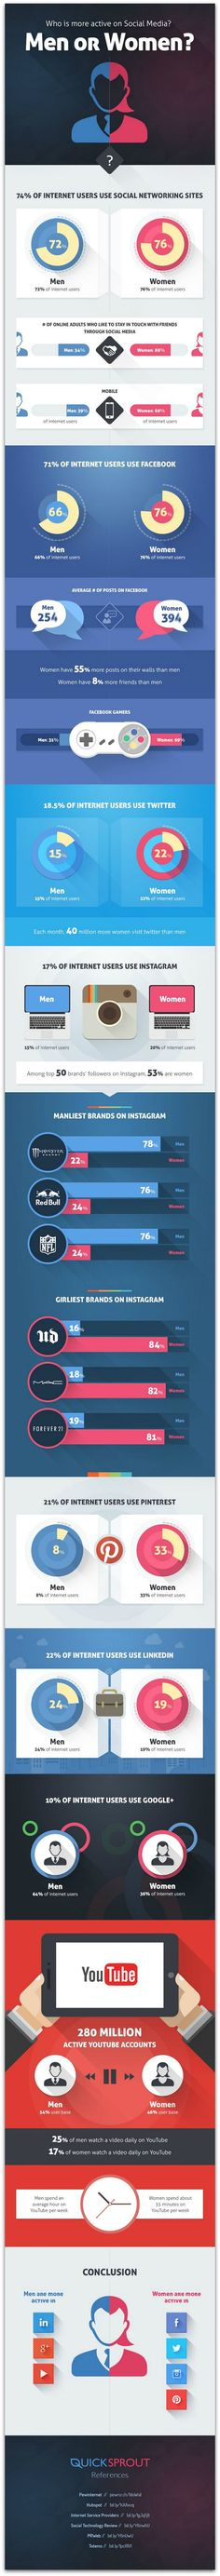 Who is more active on social media? nfographic From: Ragan's Healthcare Communication News